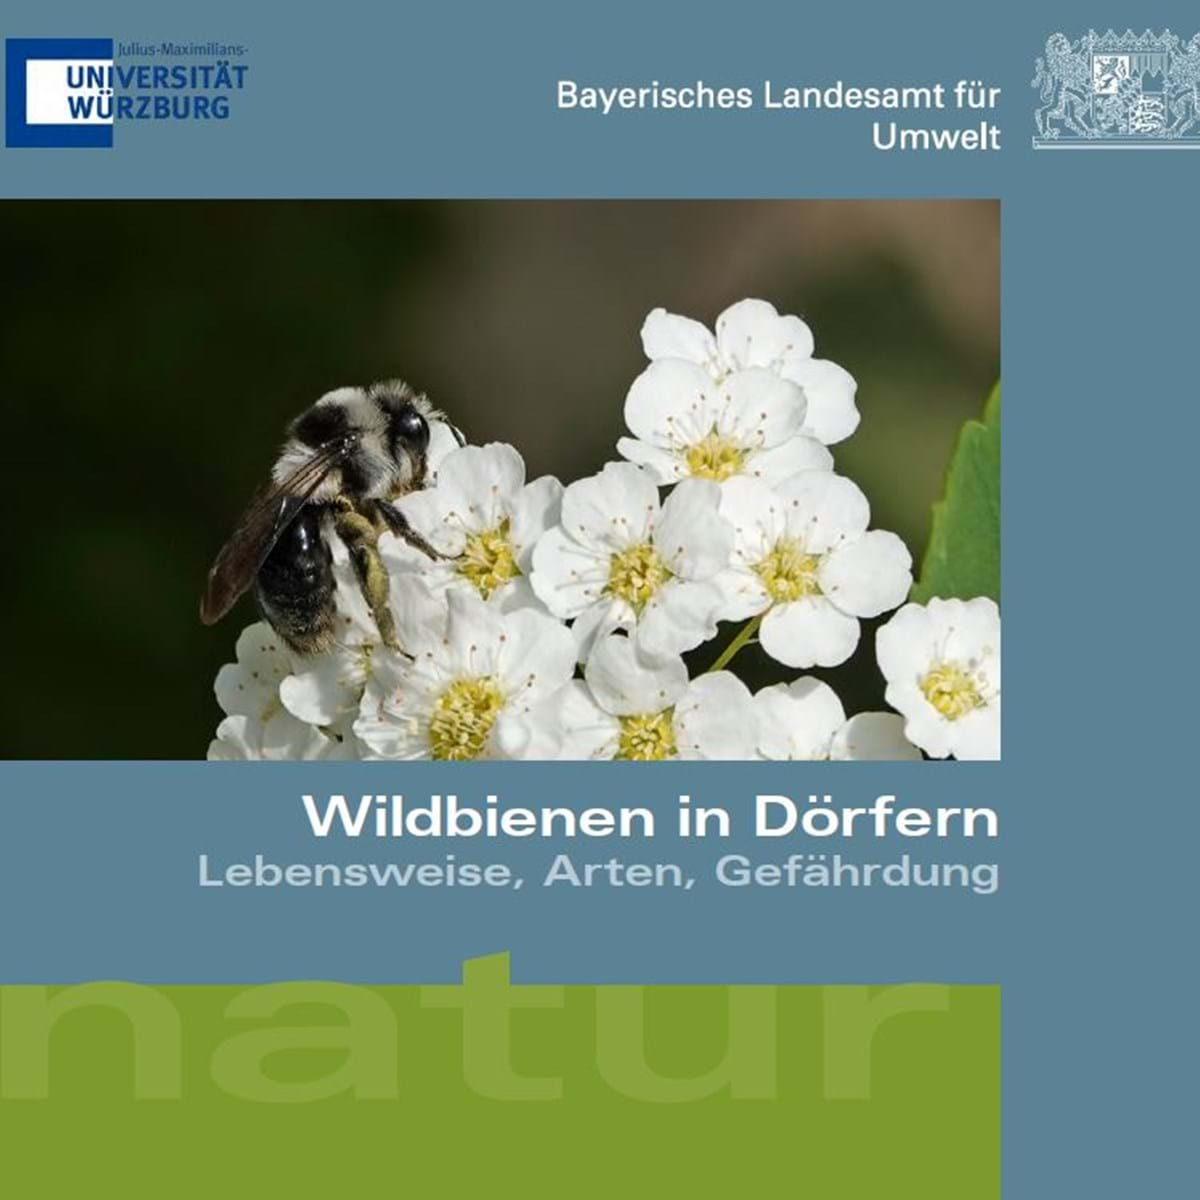 Neuigkeiten Wildbienendörfer